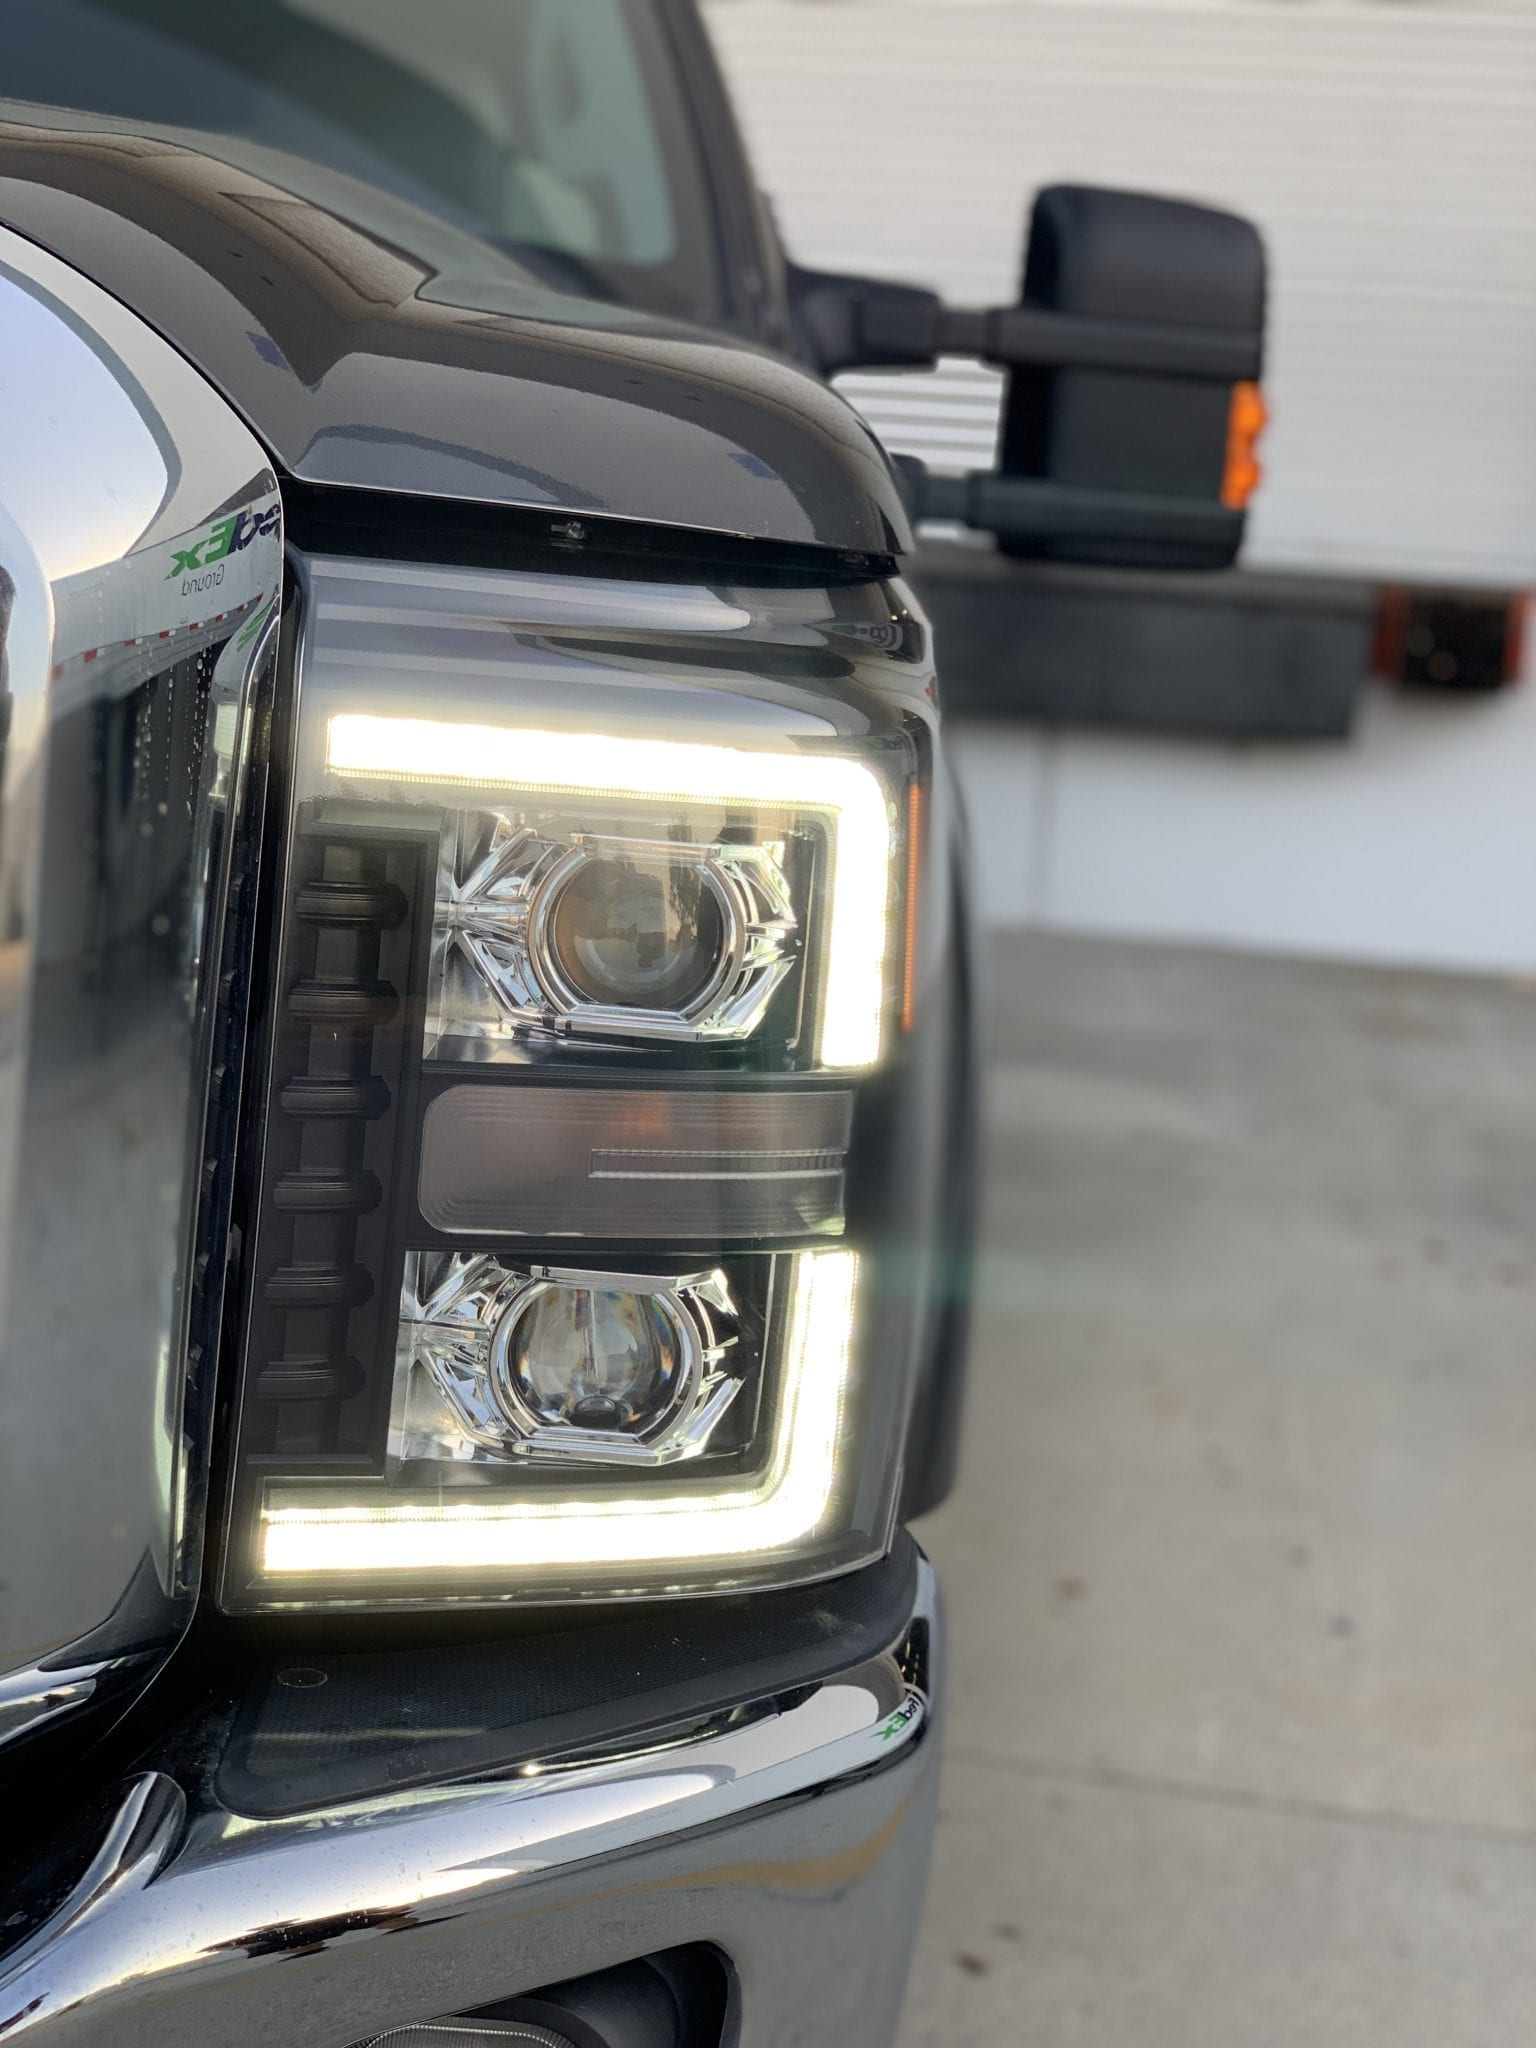 2011 2012 2013 2014 2015 2016 Ford F250 F350 F450 F550 Super Duty PRO-Series Projector Headlights Black